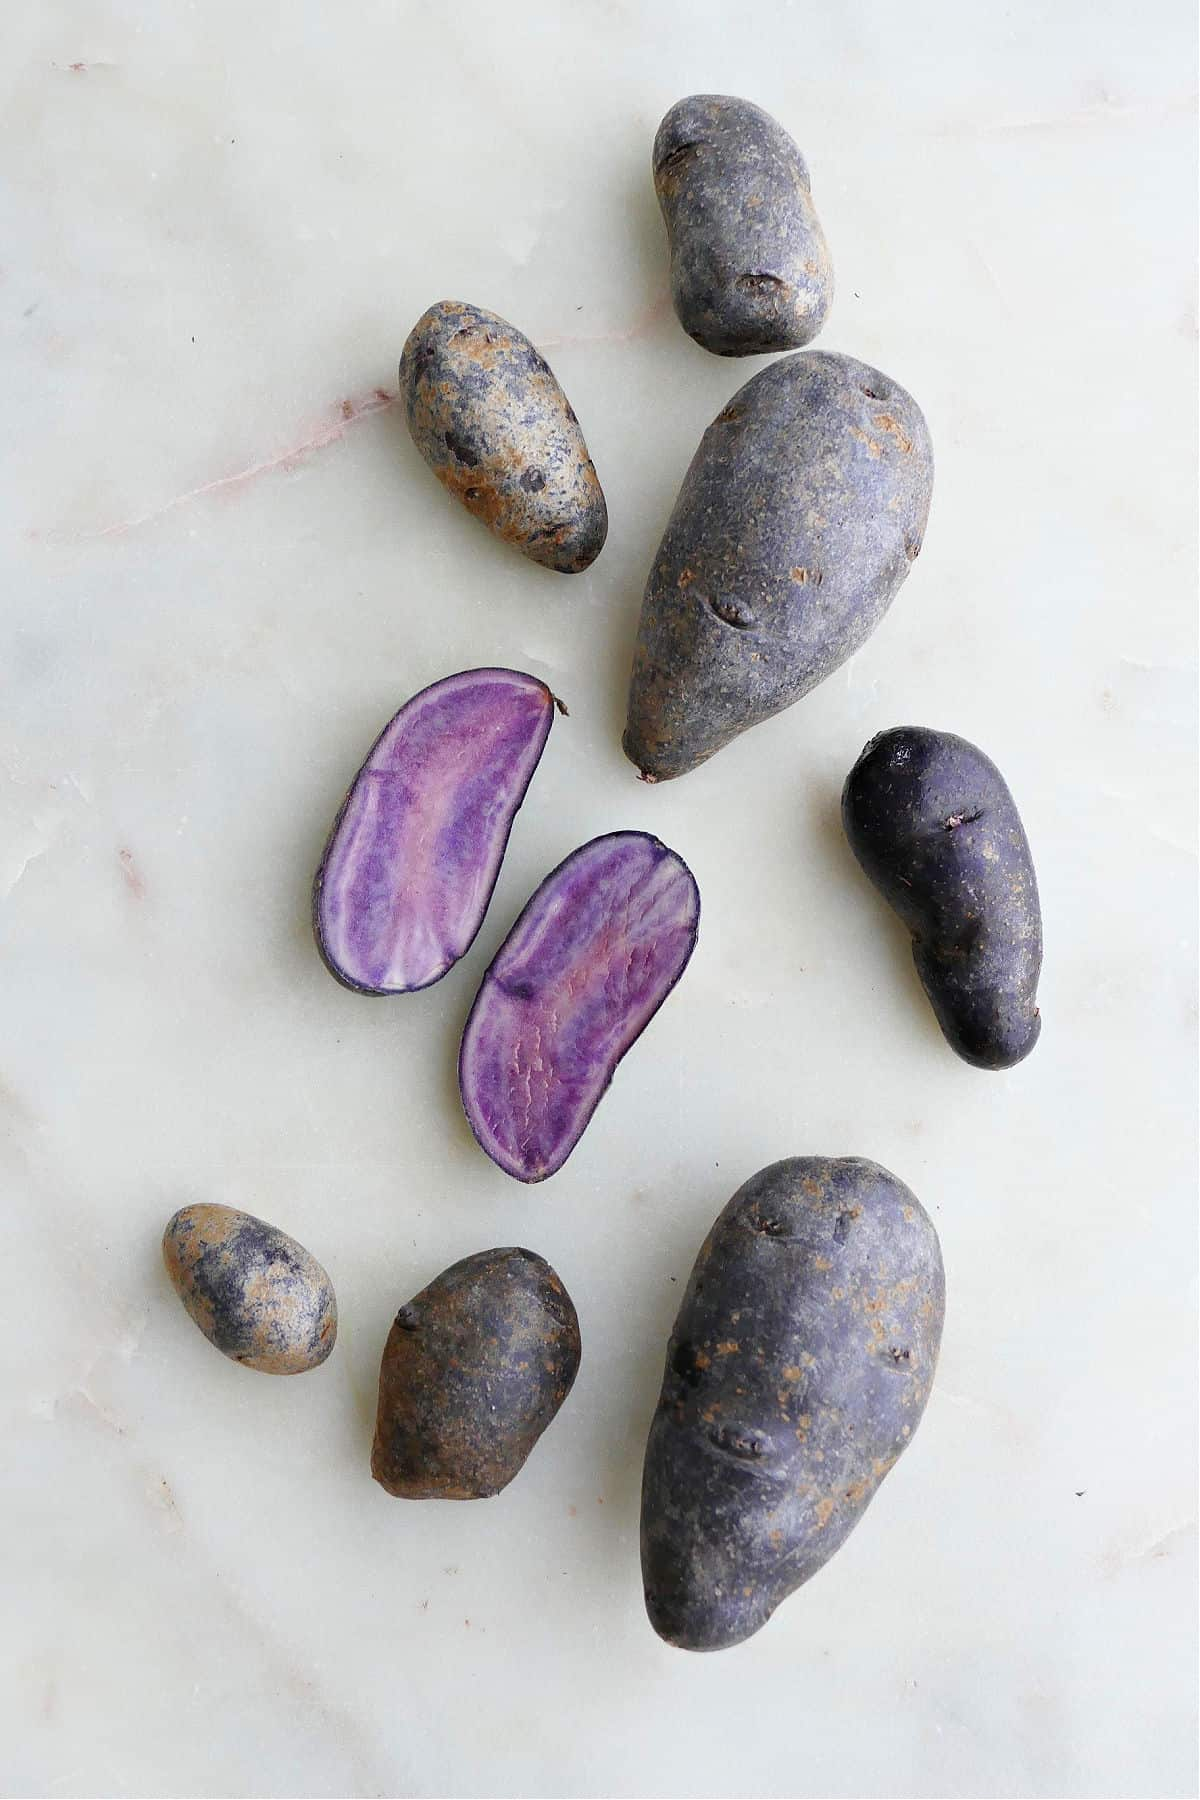 purple potatoes spread out next to each other on a counter